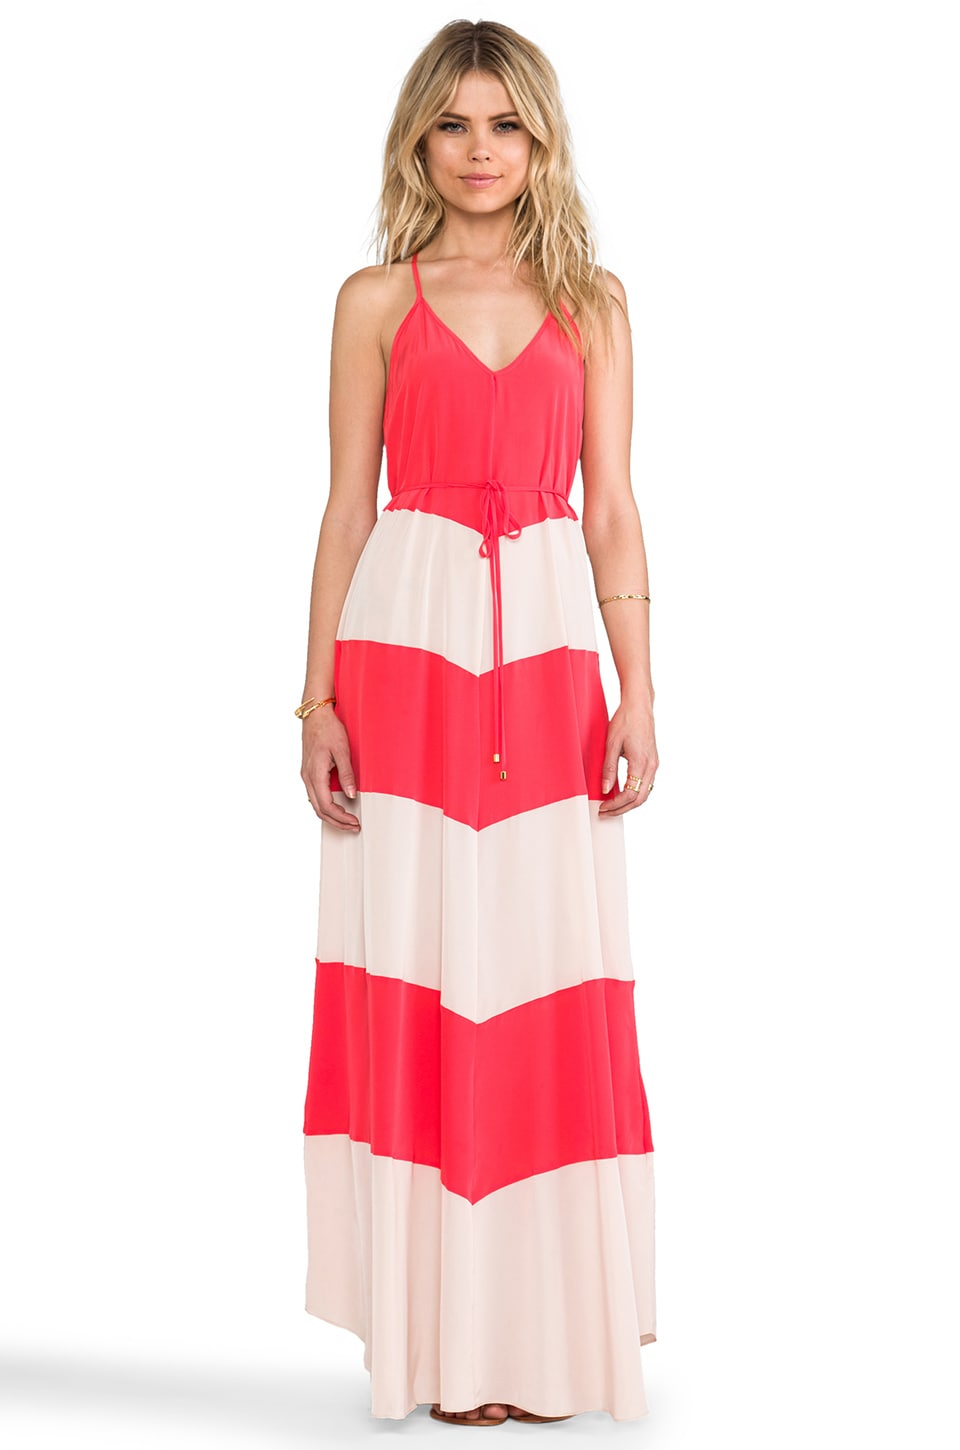 Karina Grimaldi Somer Combo Maxi Dress in Red & Nude Combo